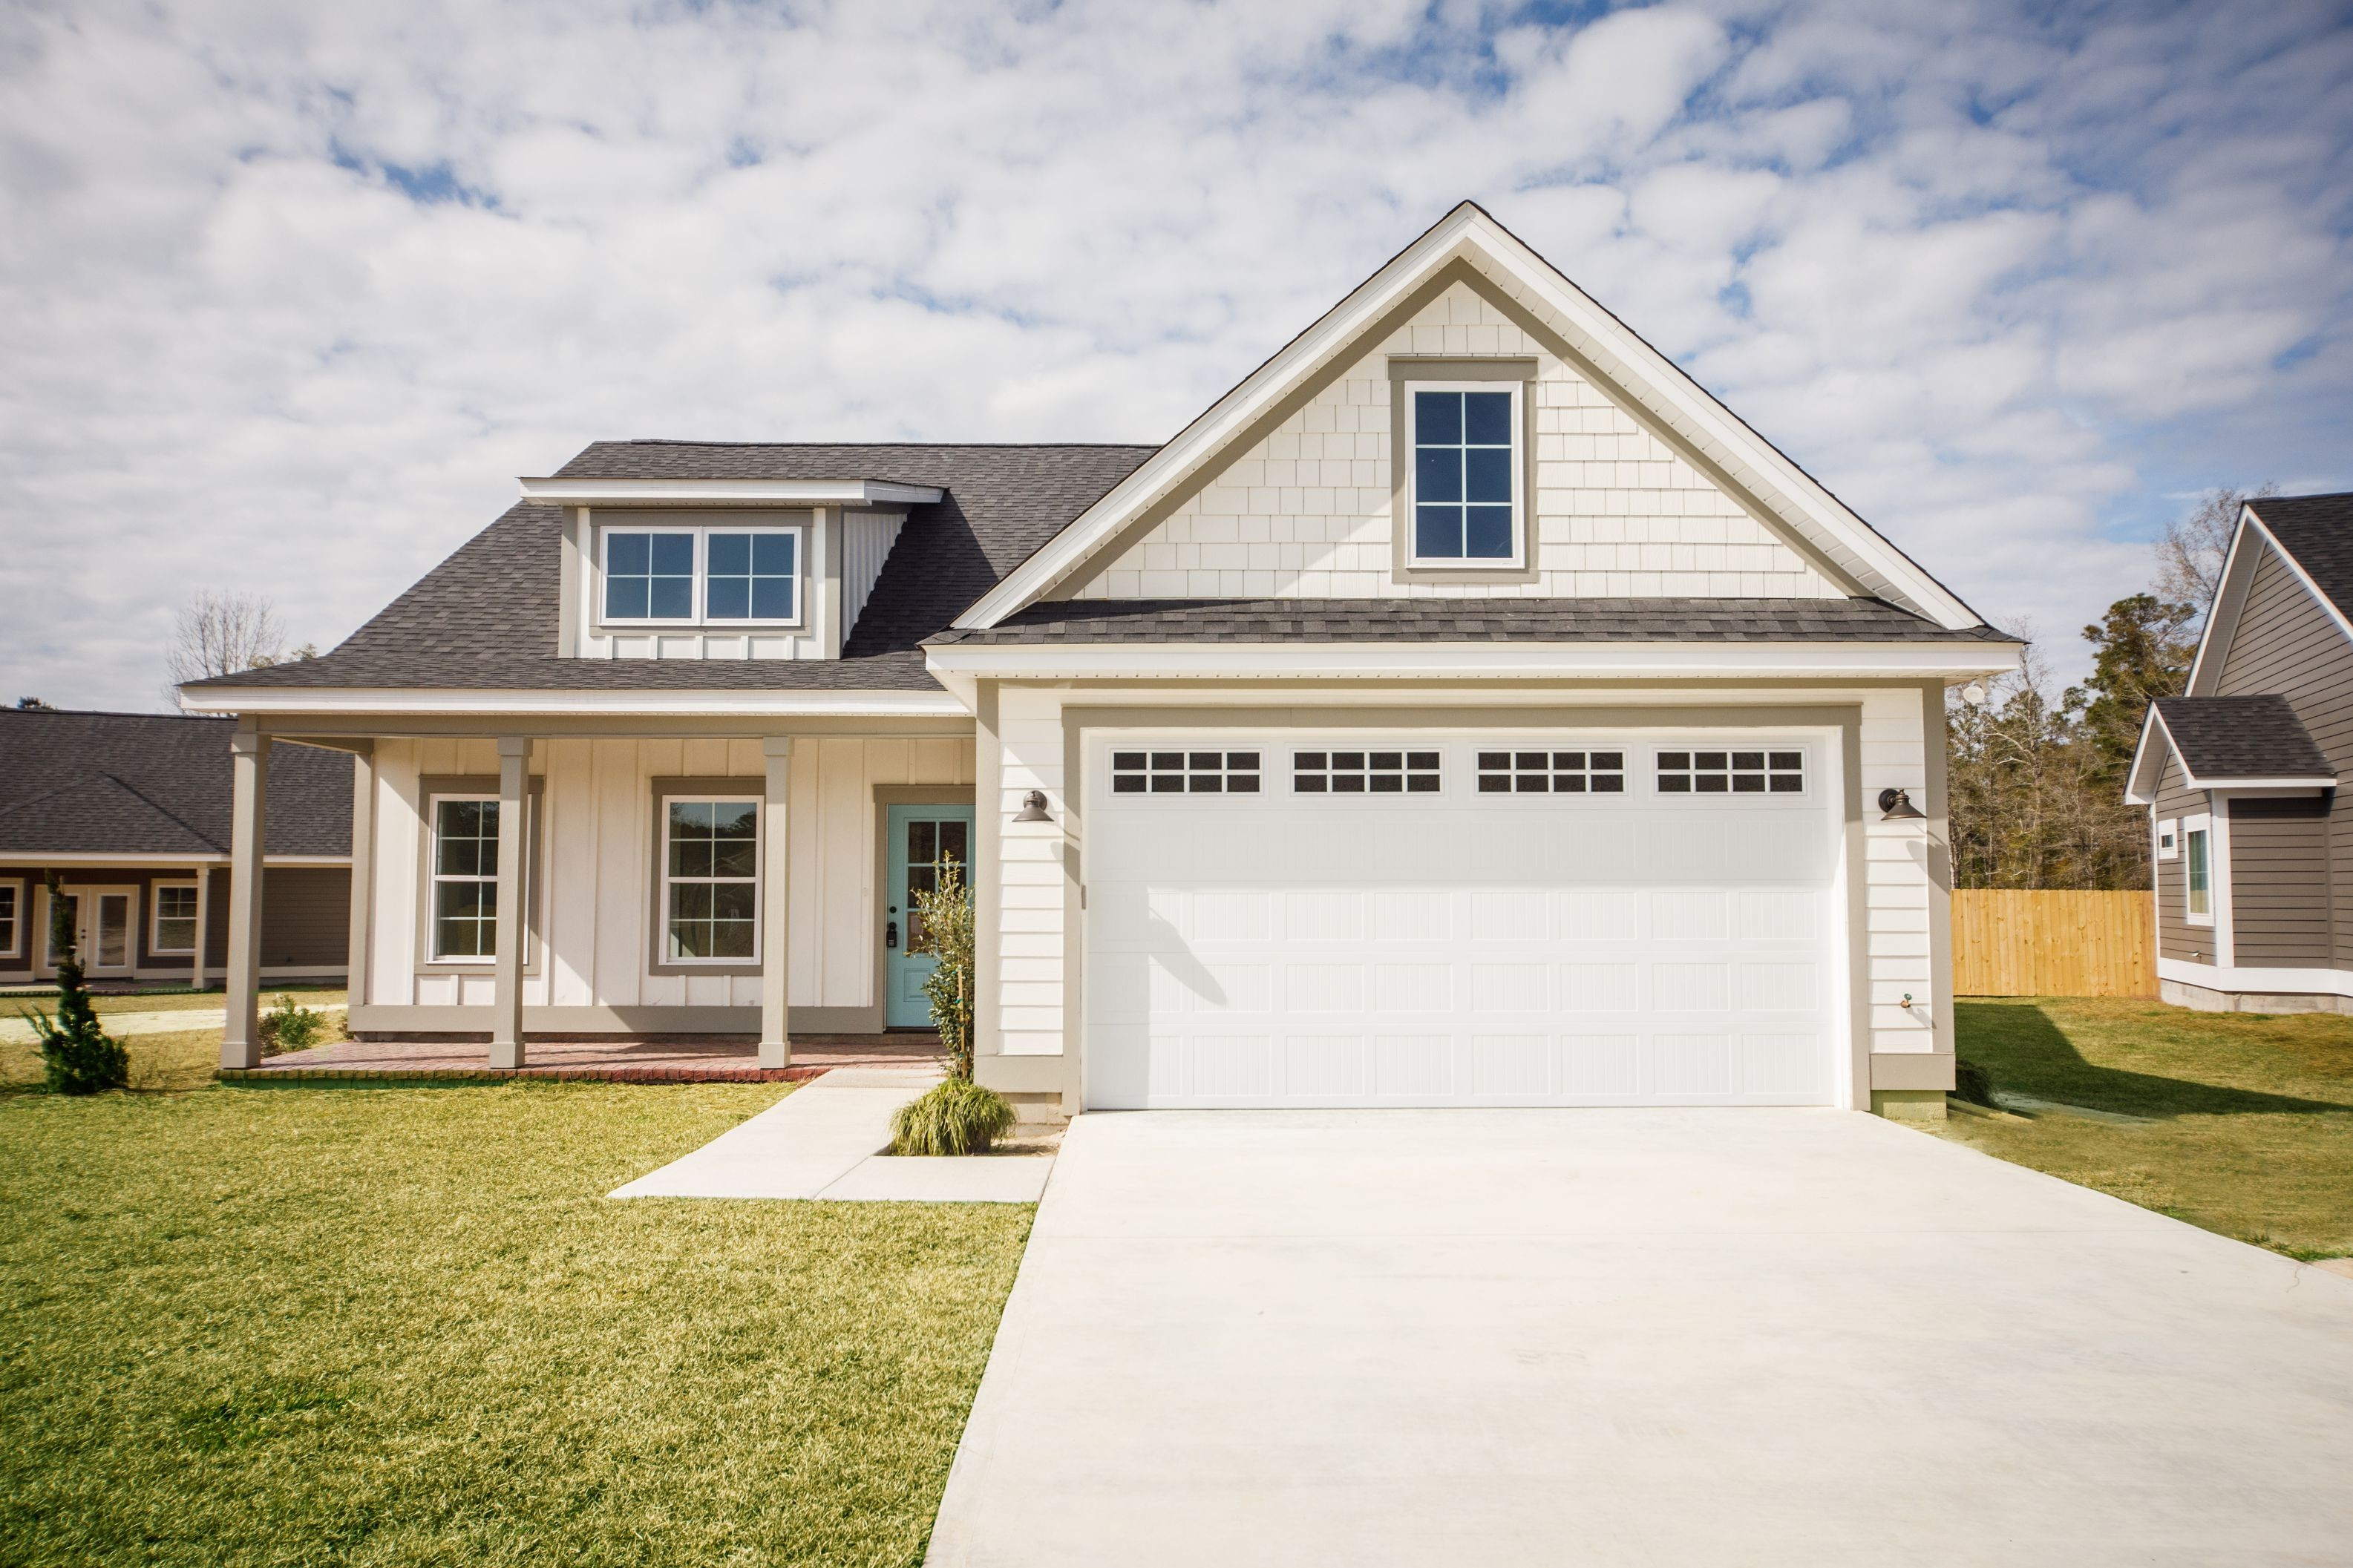 Garage renovations – the opportunity to reevaluate the flow of your home